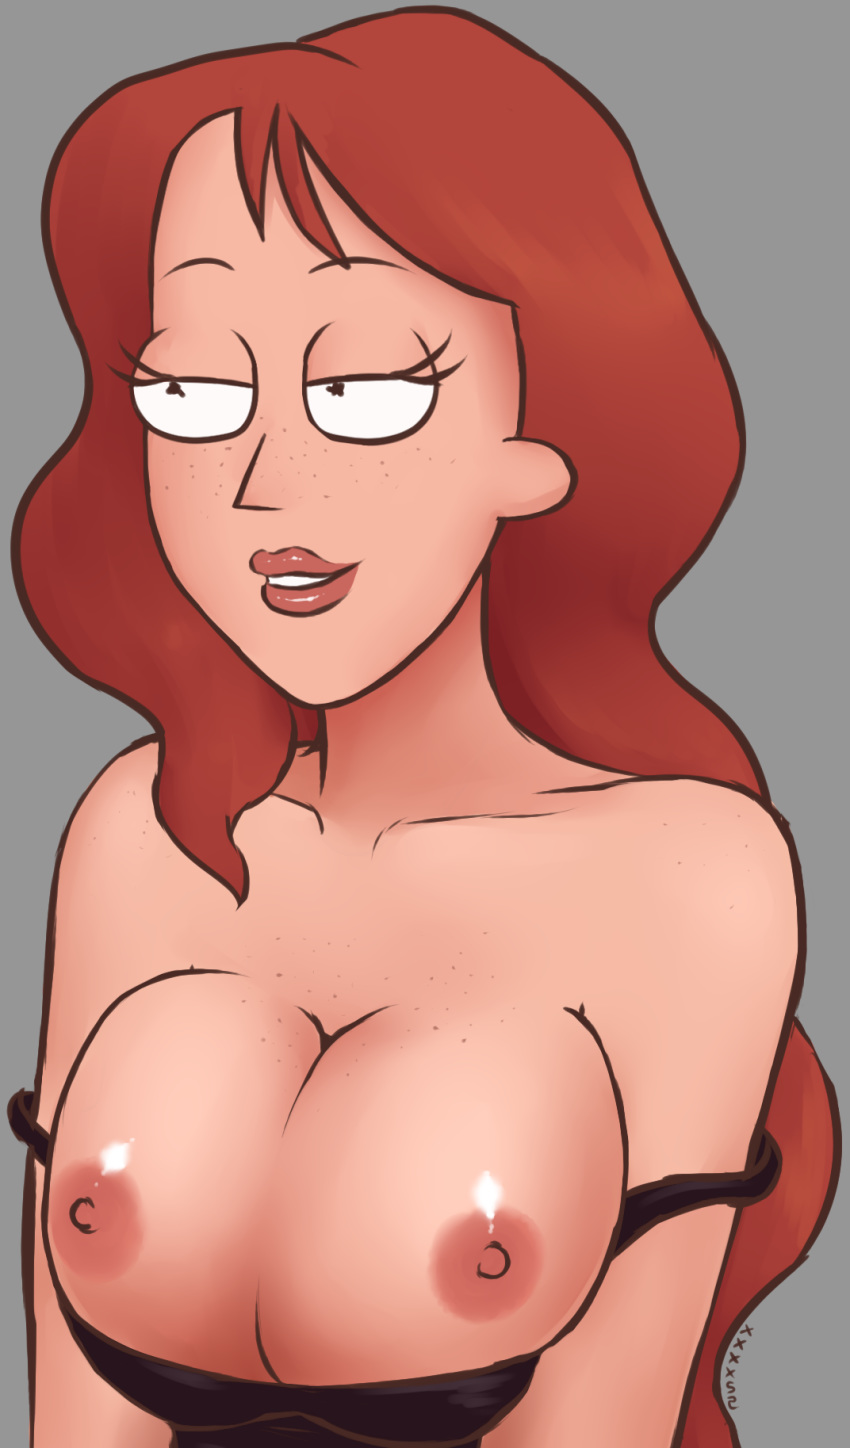 i wish rick porn incest and morty Shark dating simulator xl boobs